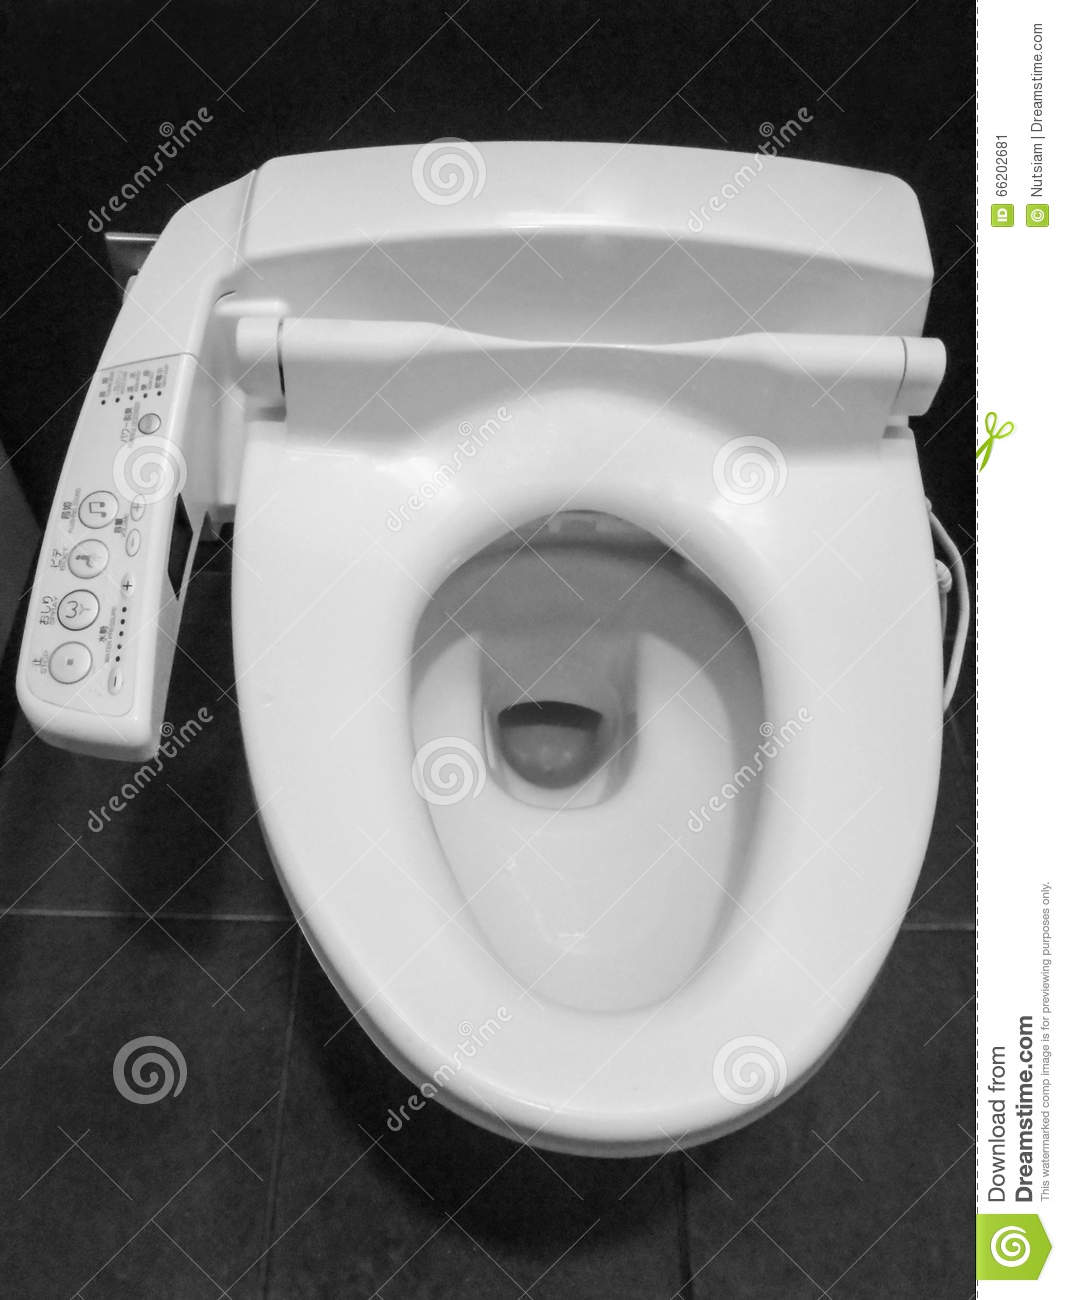 Toilet with heated seat stock image. Image of bathroom - 66202681